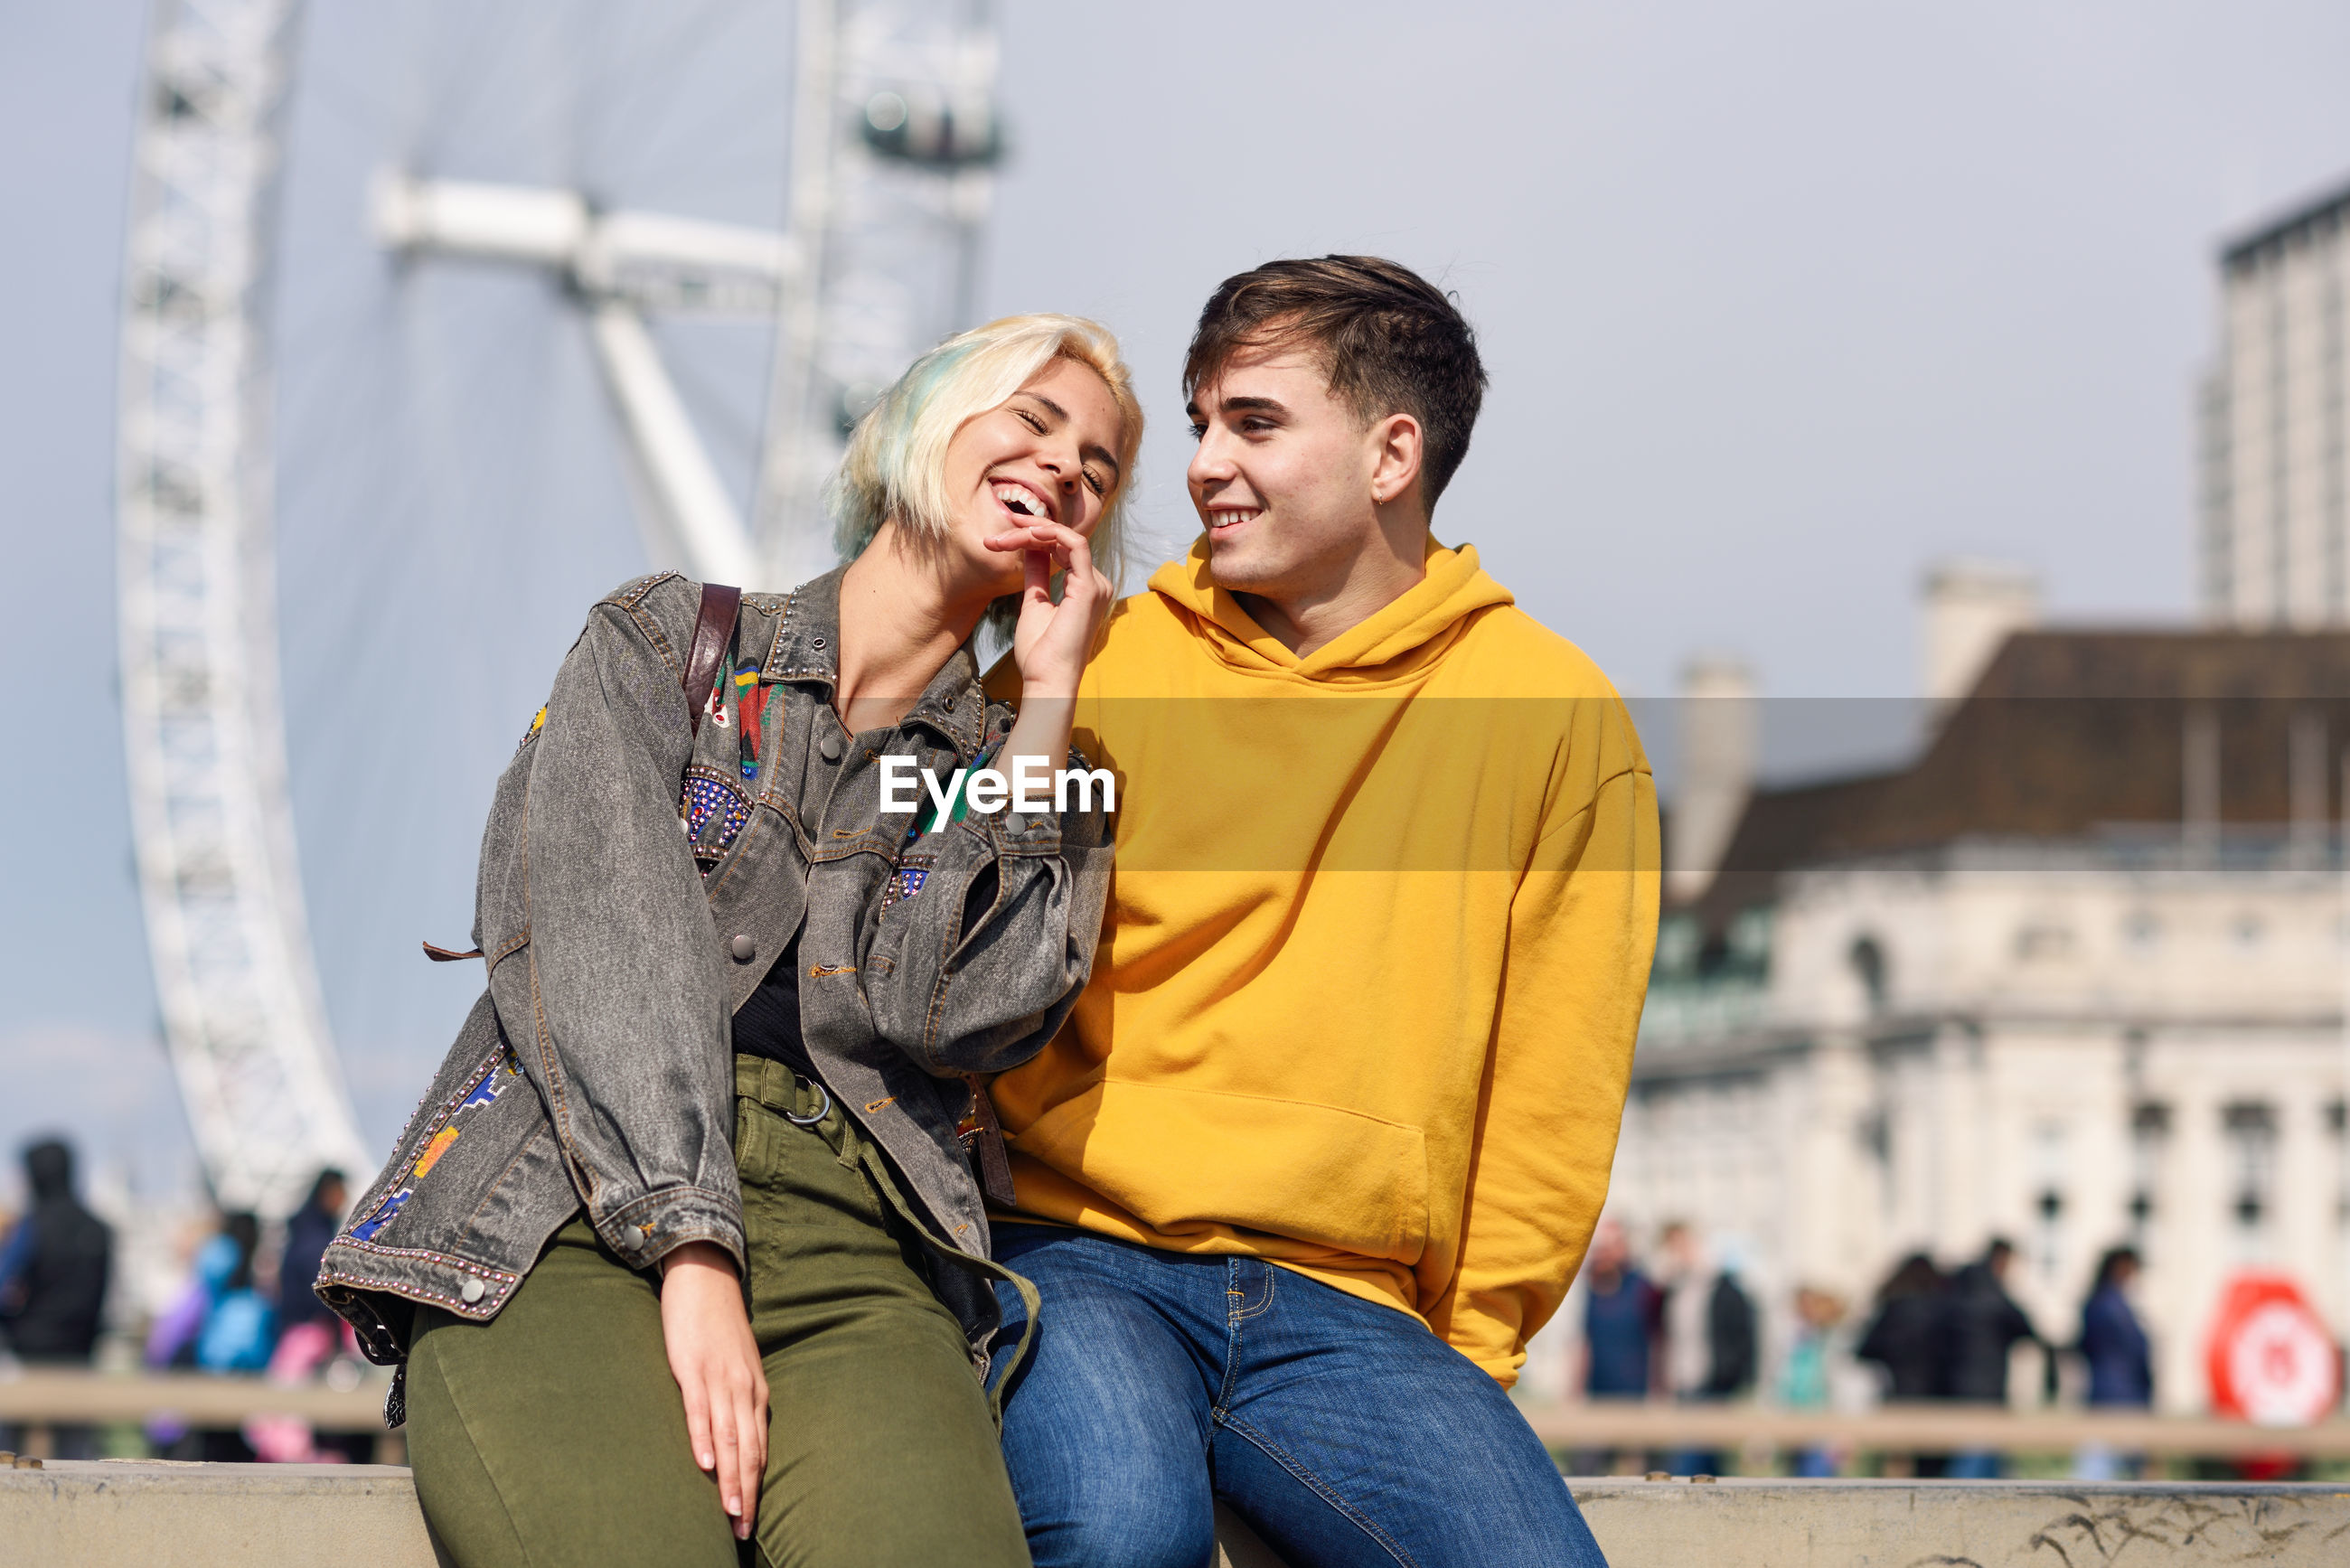 Smiling couple talking in city